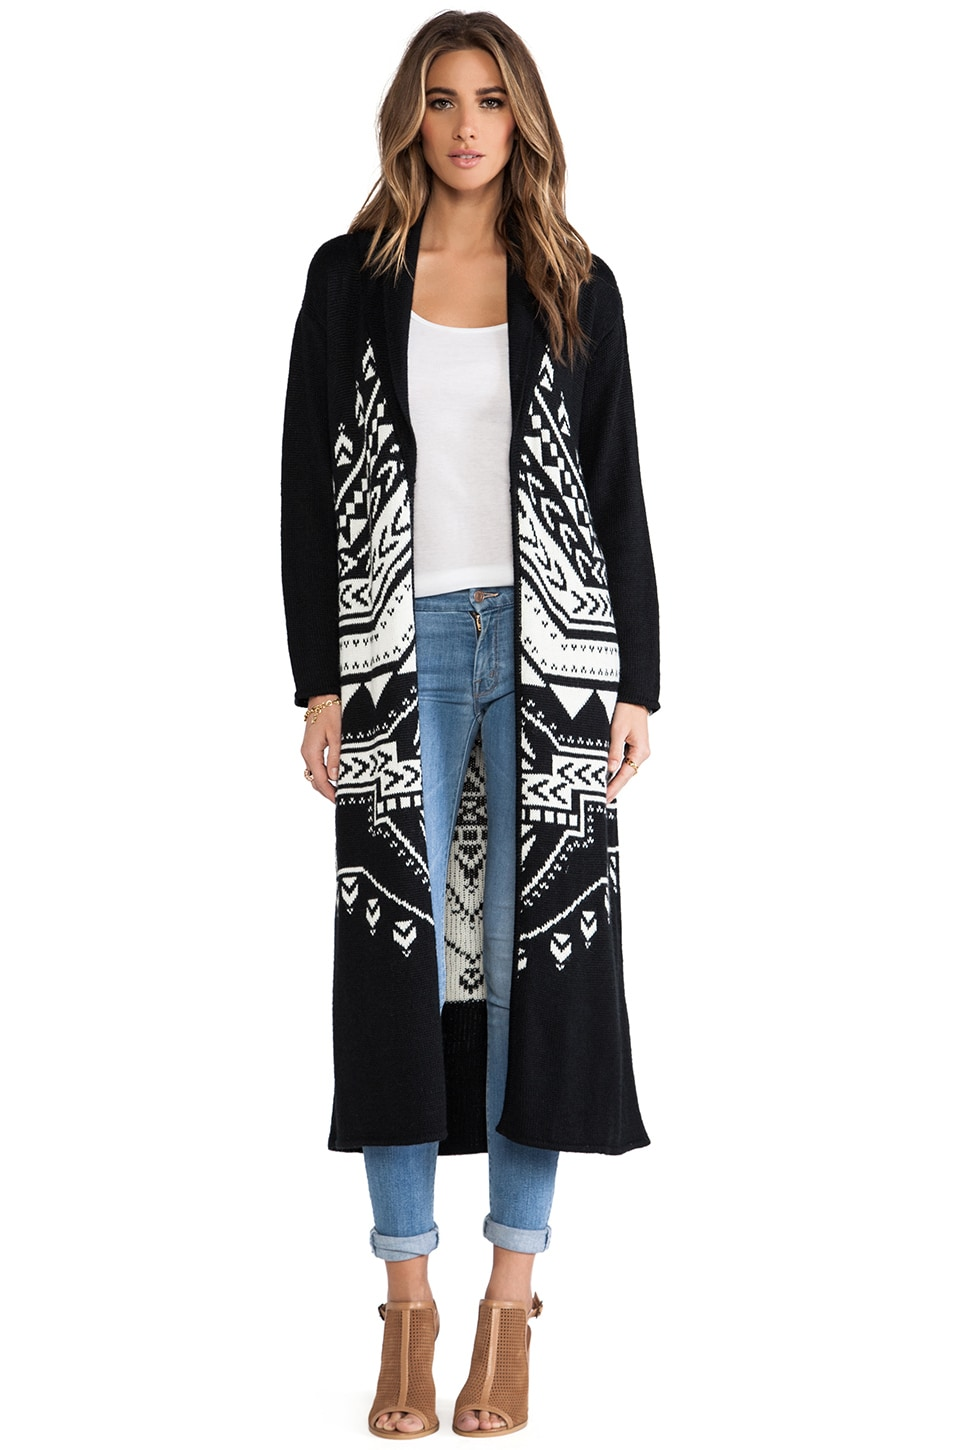 Mara Hoffman Sweater Coat in Black & White